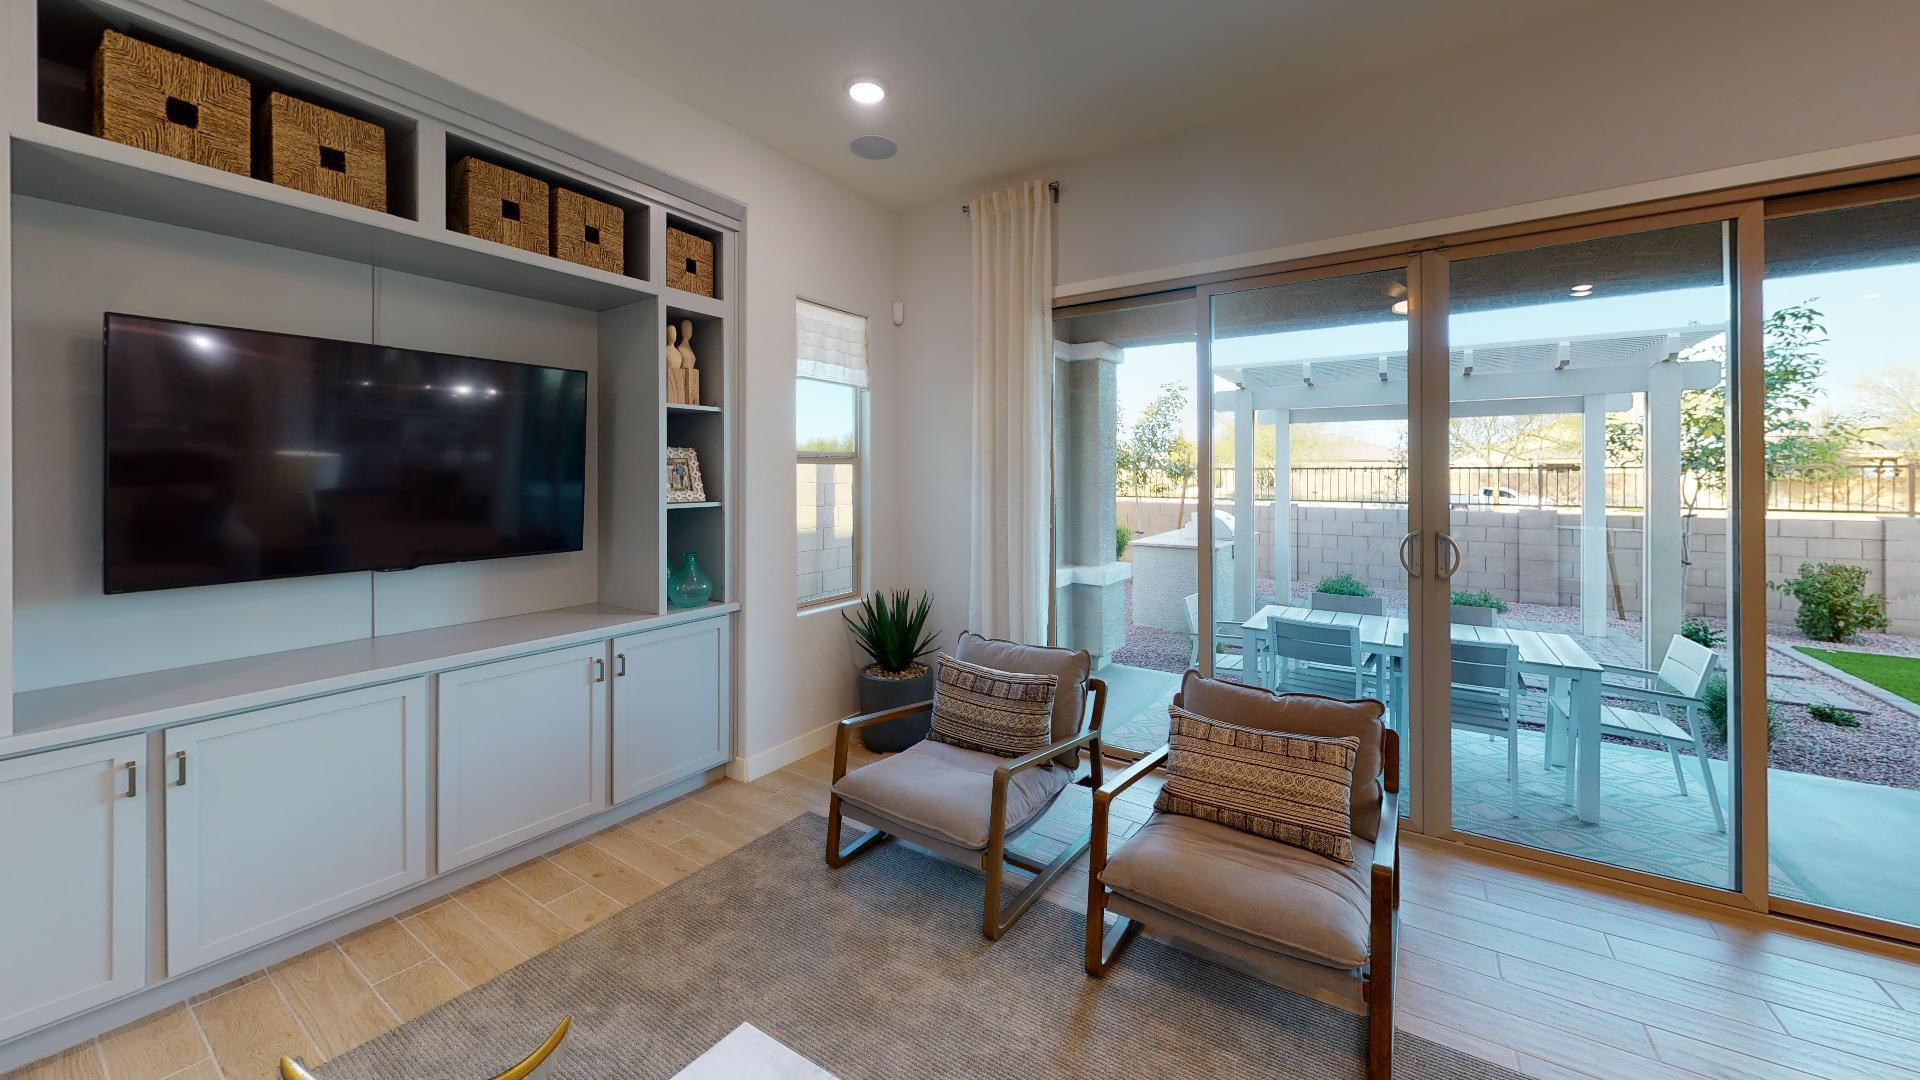 Living Area featured in the Brookside By Cresleigh Homes Arizona, Inc. in Phoenix-Mesa, AZ